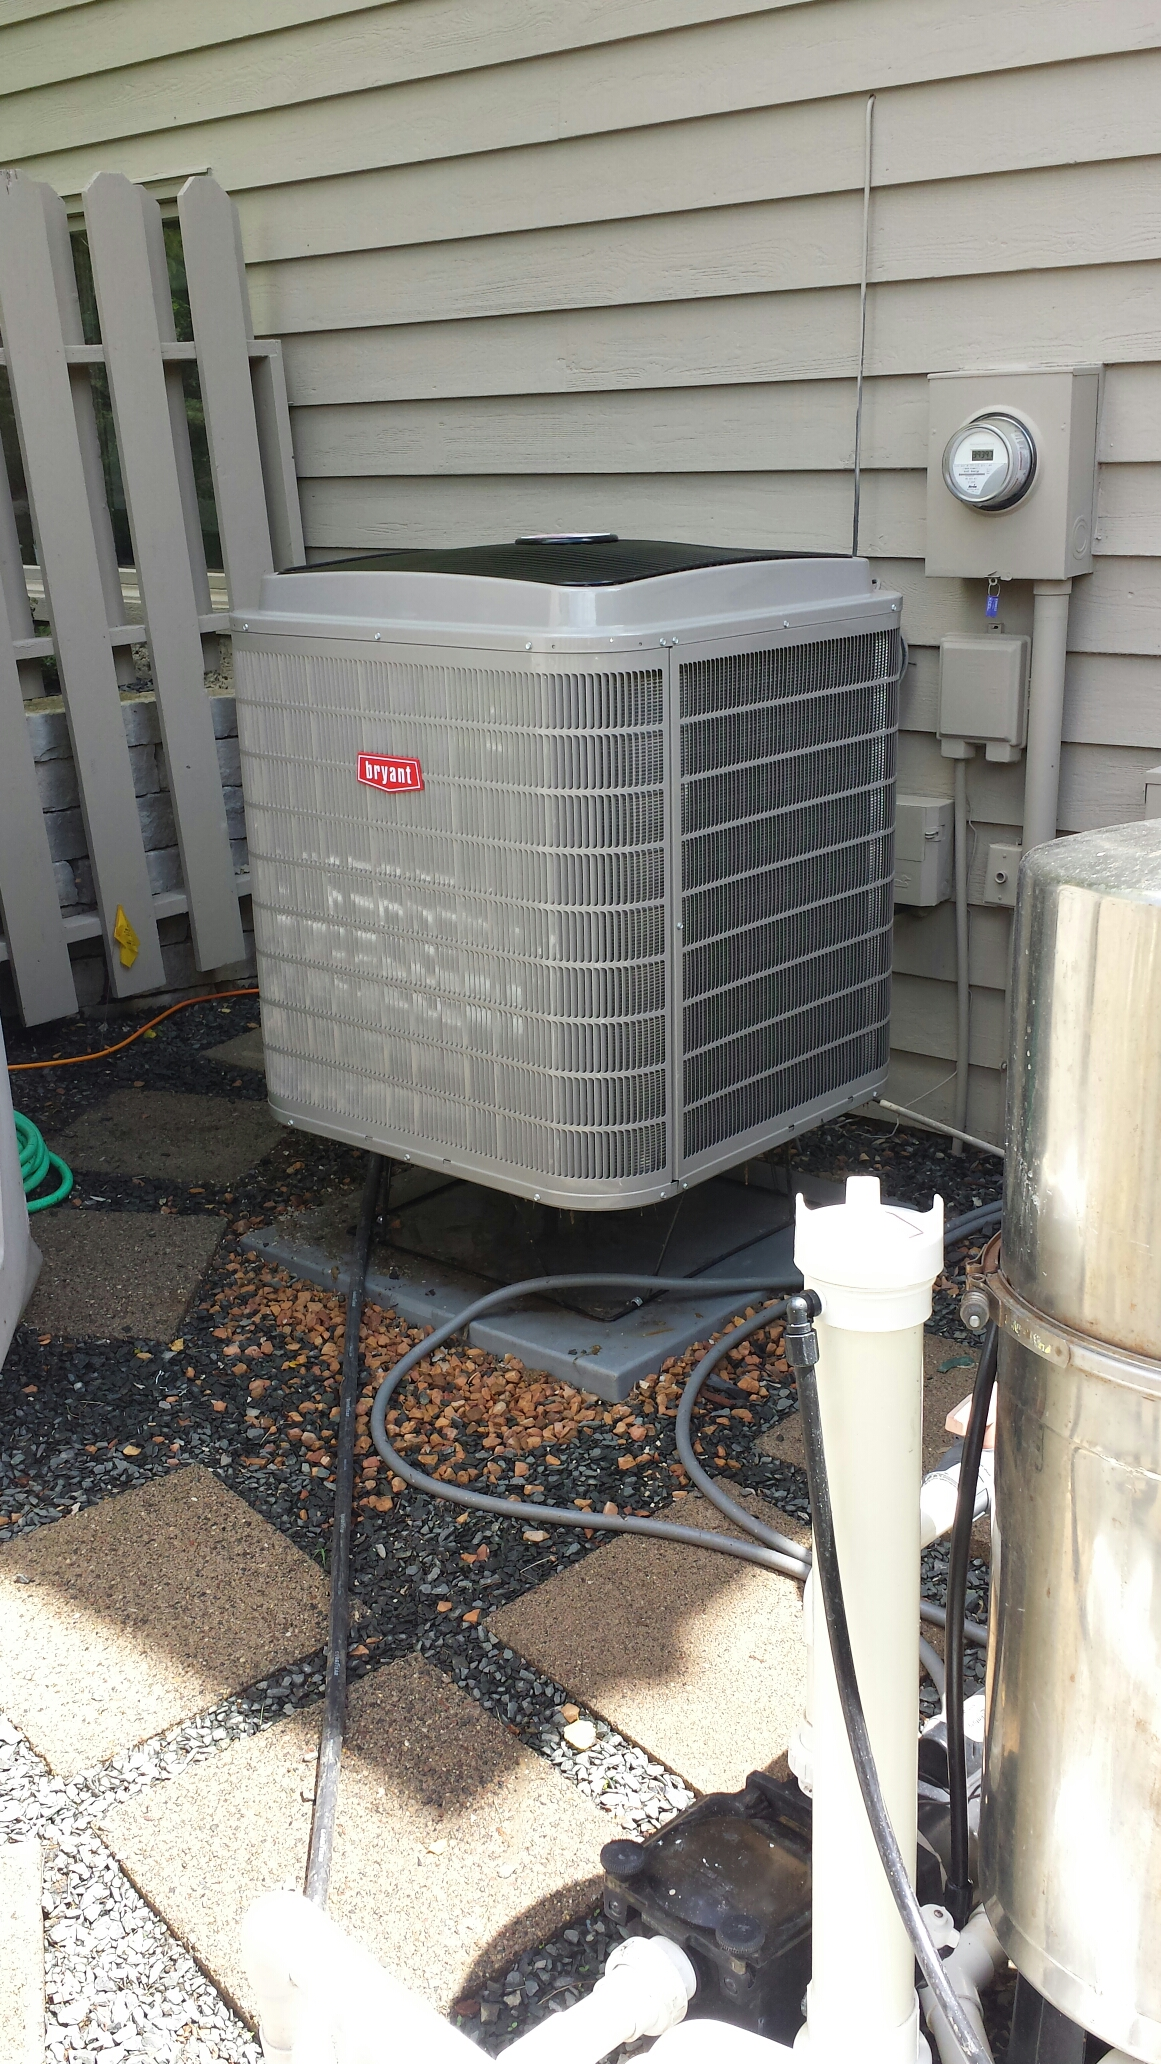 Long Lake, MN - Zoneing service. Diagnosed a bad zone damper and performed a cleaning and tune up on 2 Bryant heat pumps.